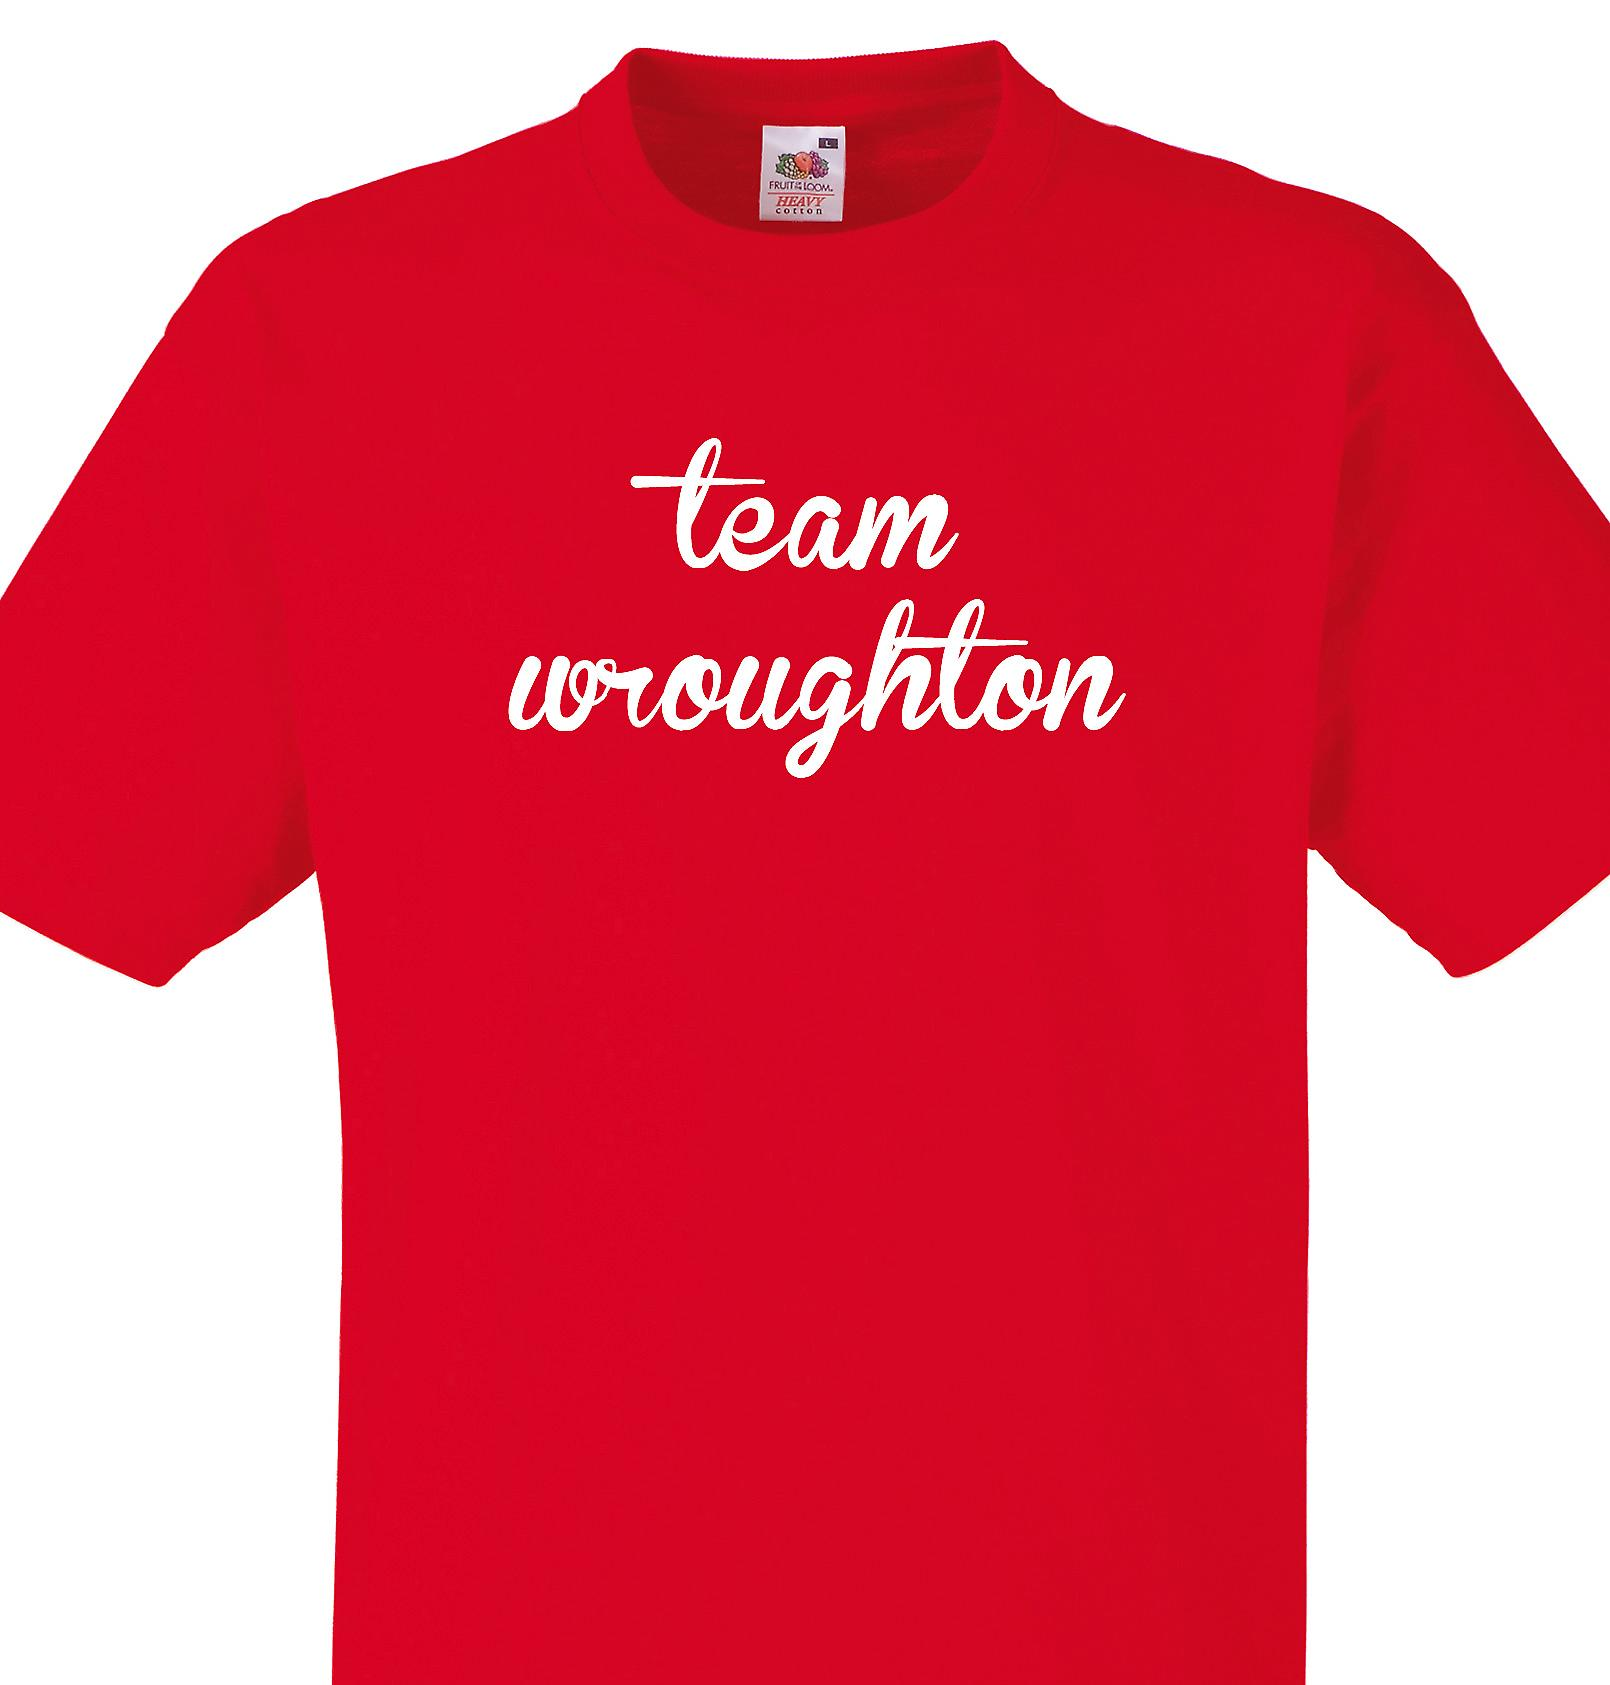 Team Wroughton Red T shirt